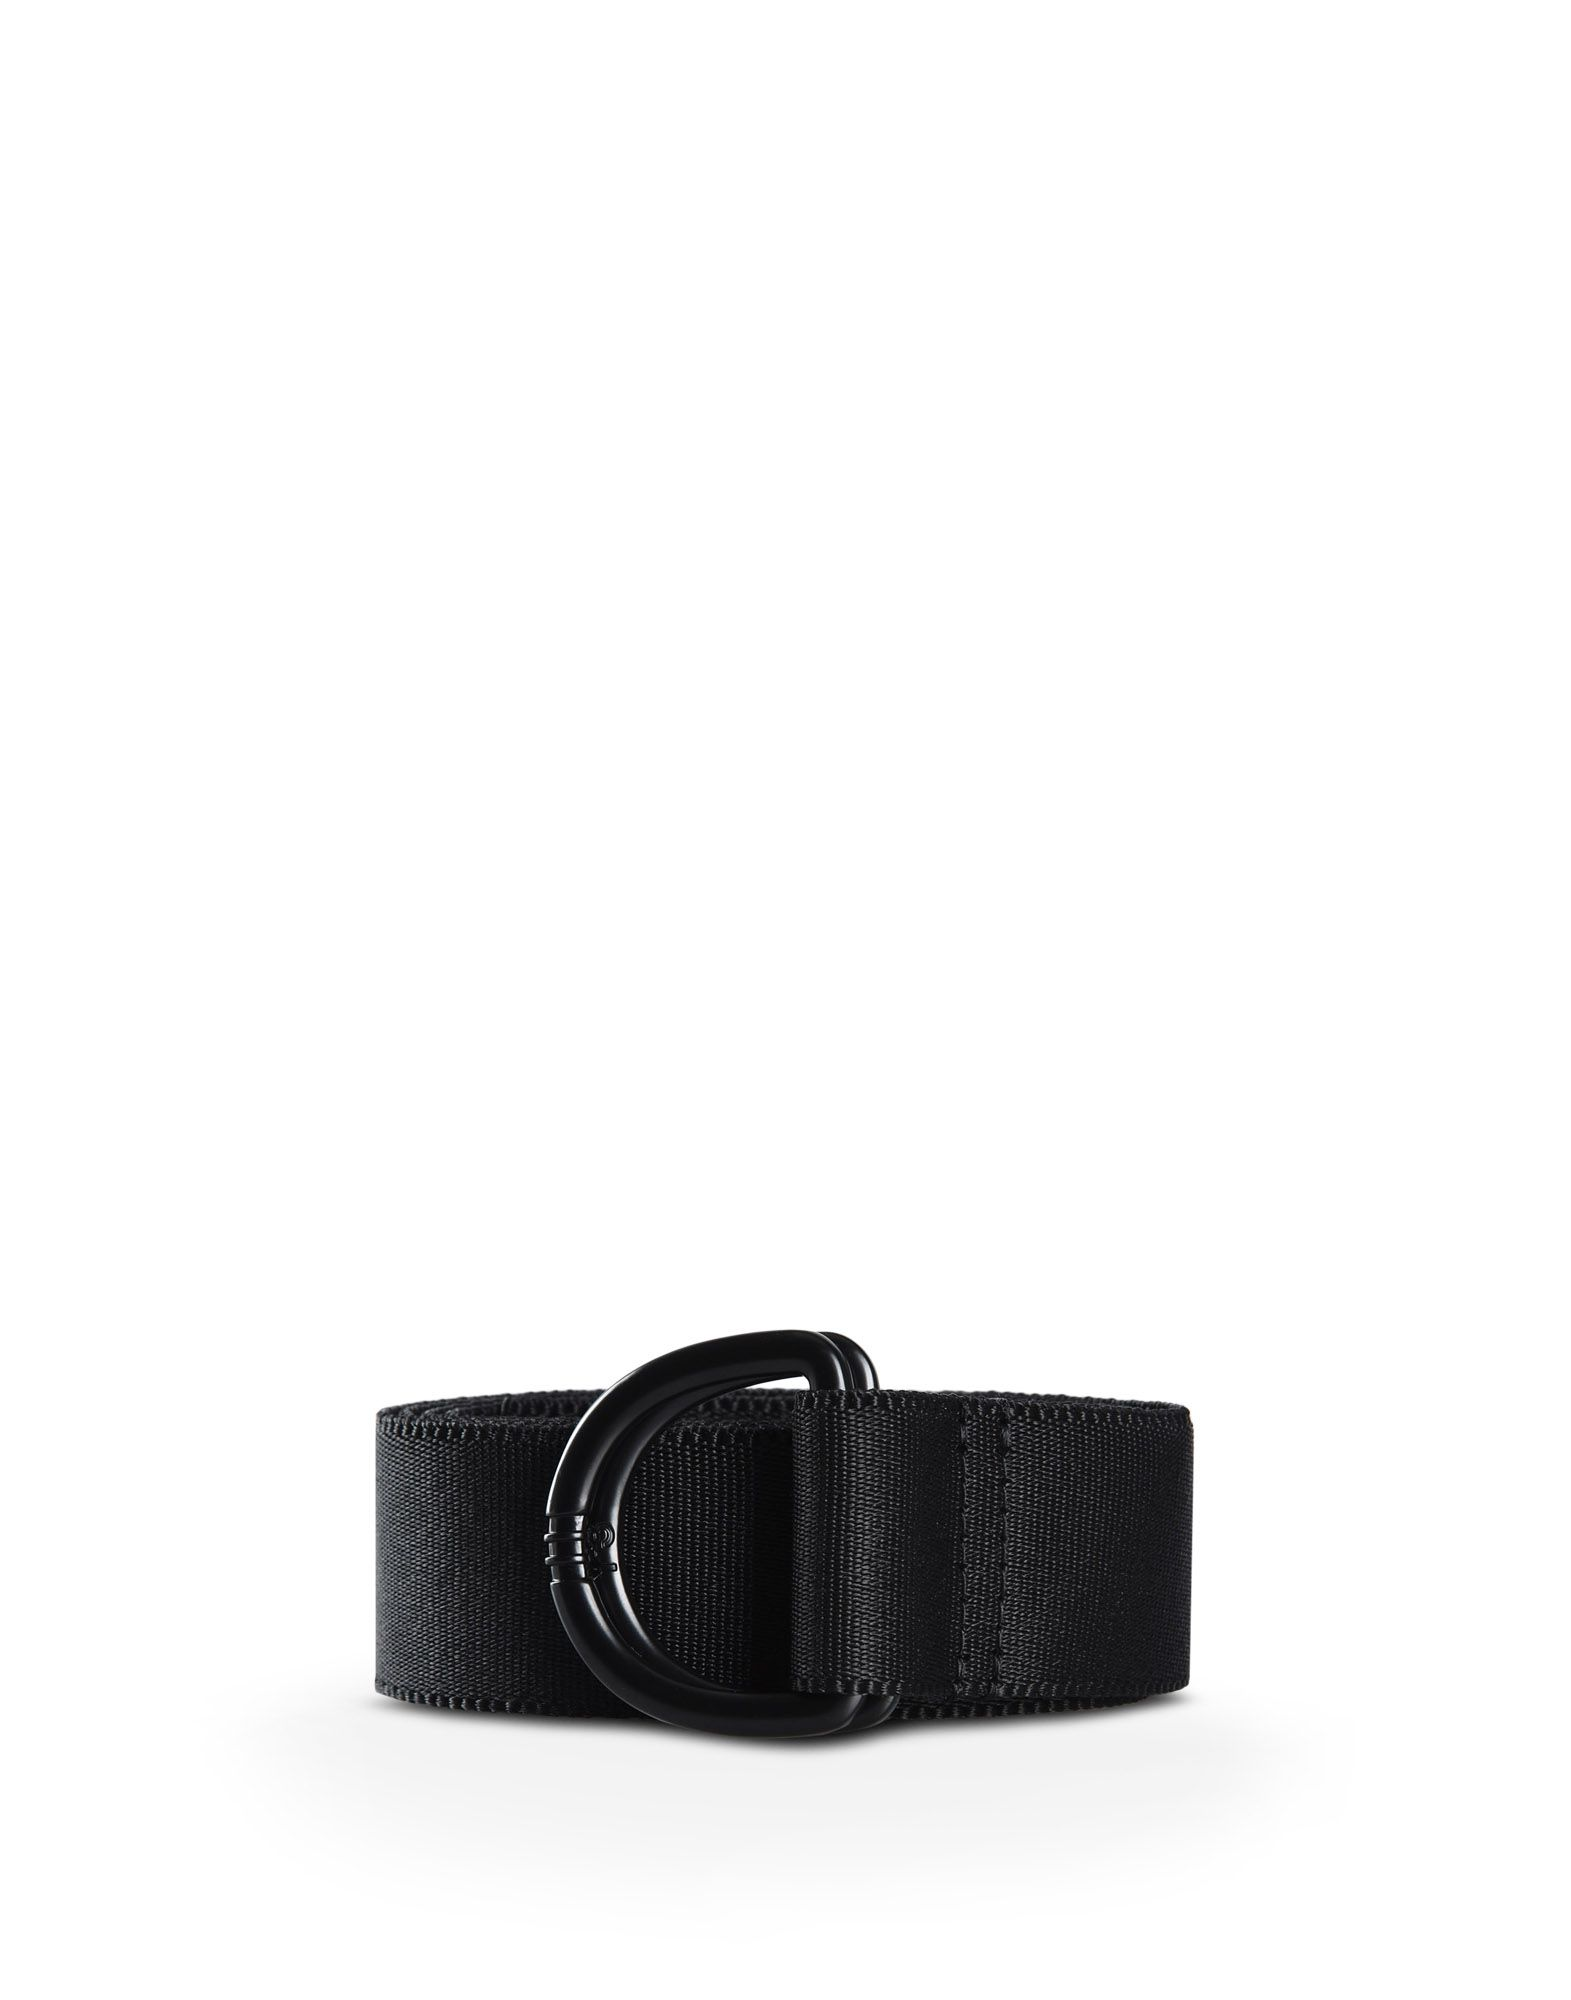 Y-3 LOGO BELT OTHER ACCESSORIES unisex Y-3 adidas